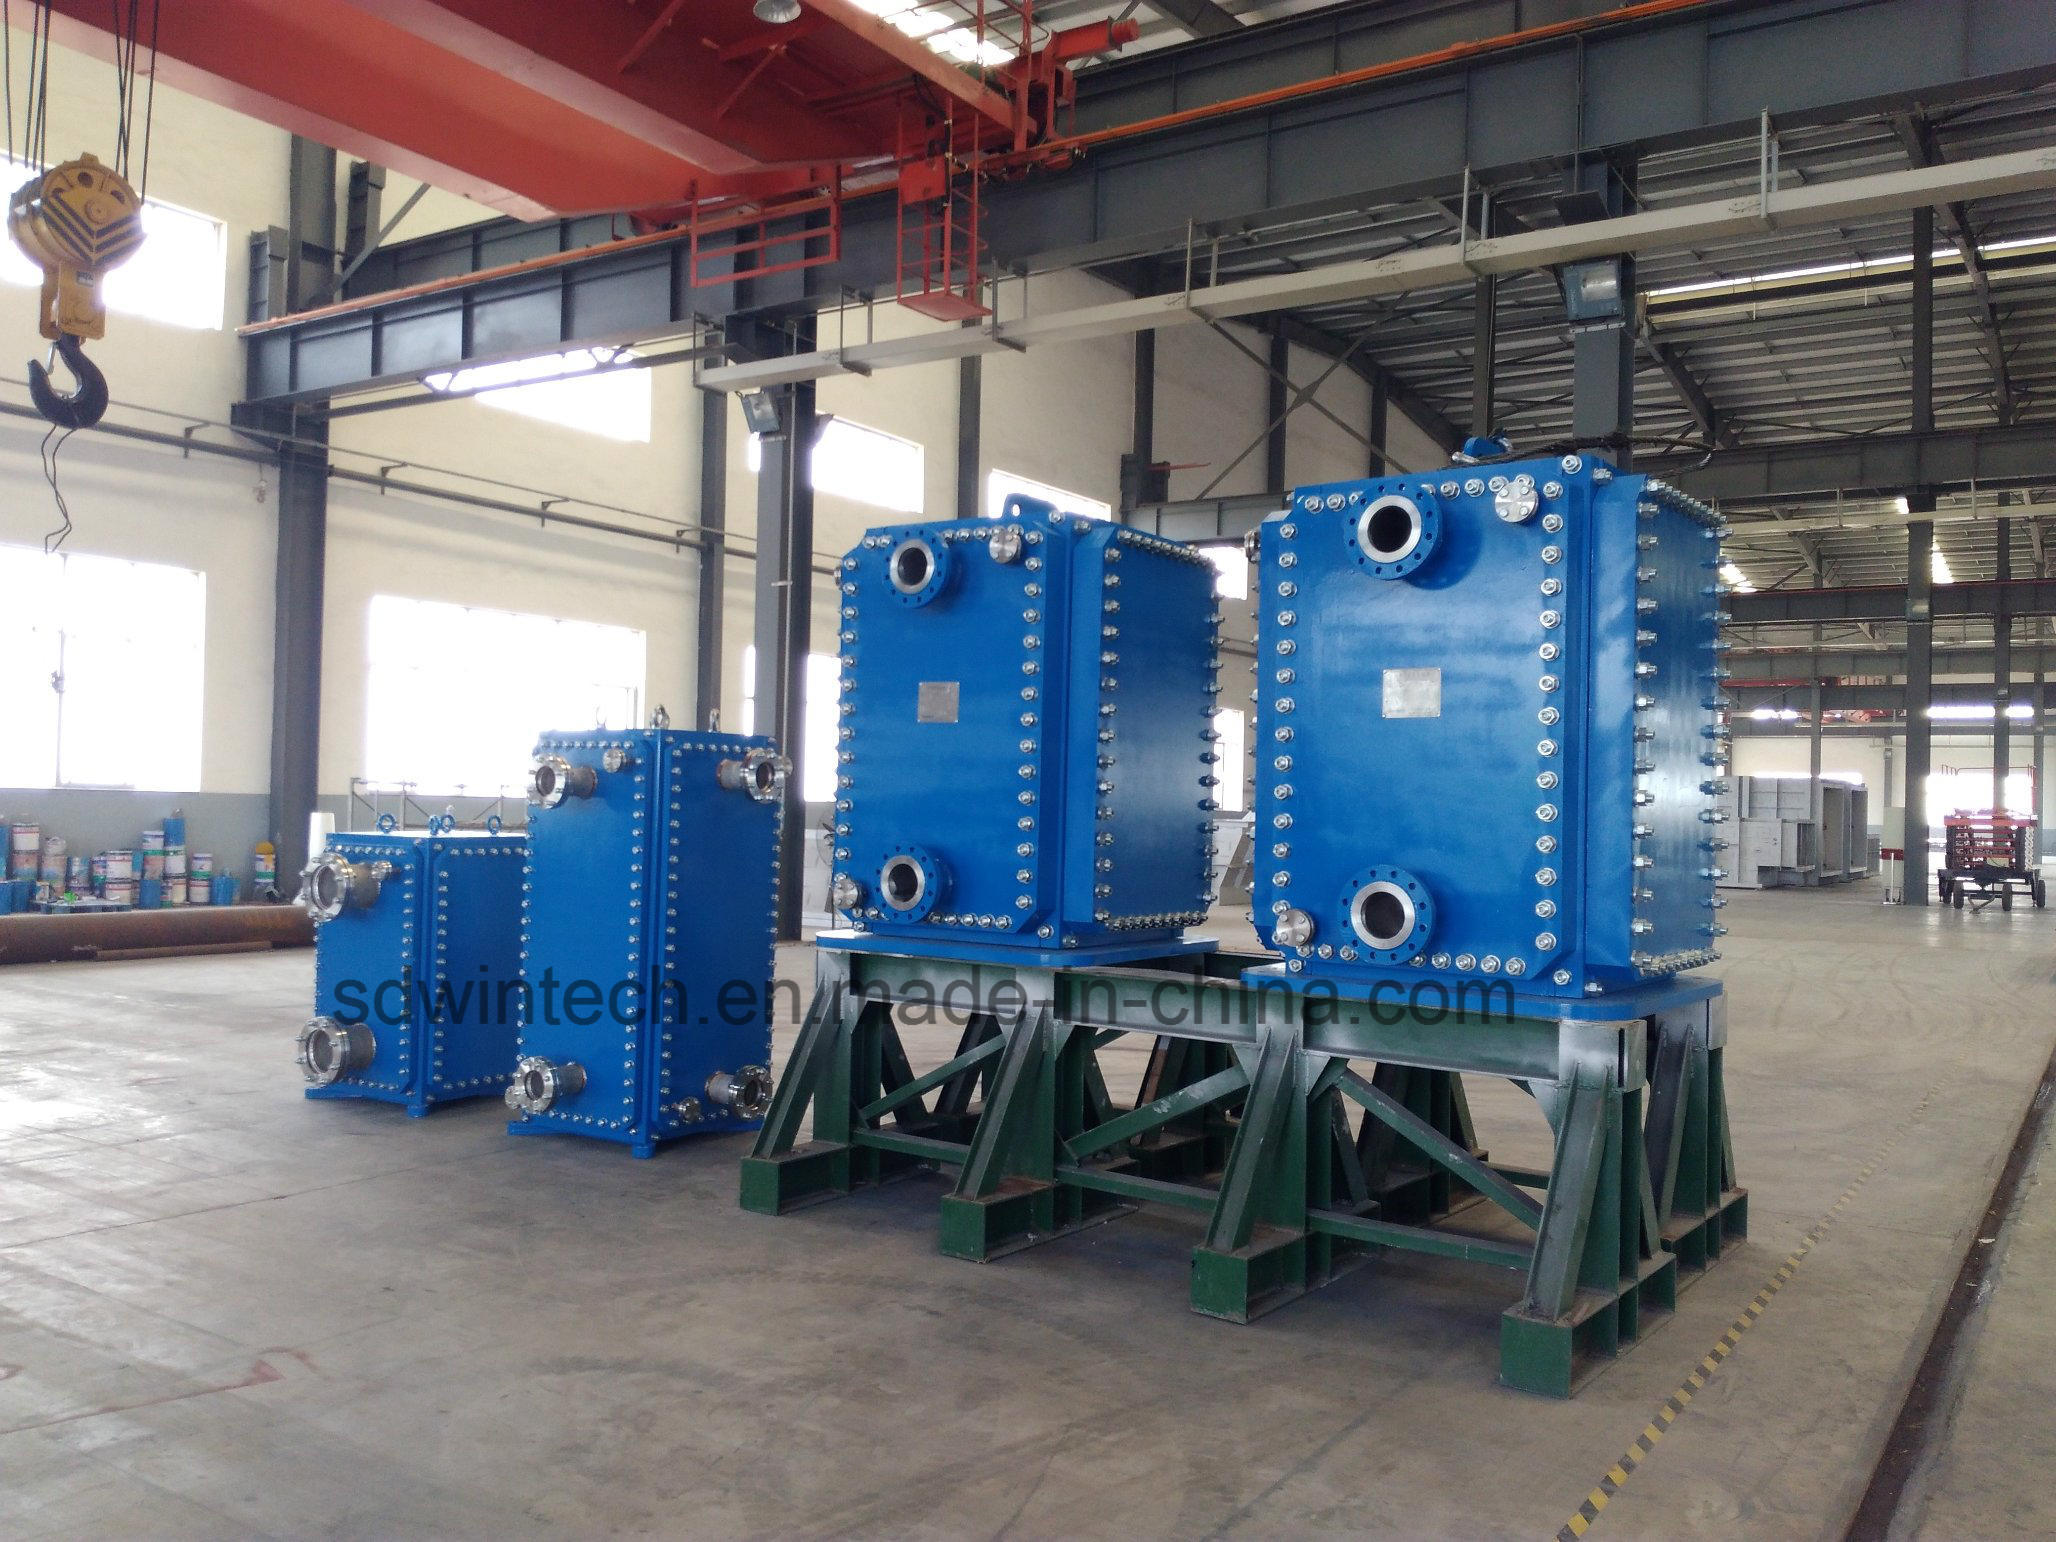 China Removable Plate Heat Exchanger - China Alfa Laval Structure ...